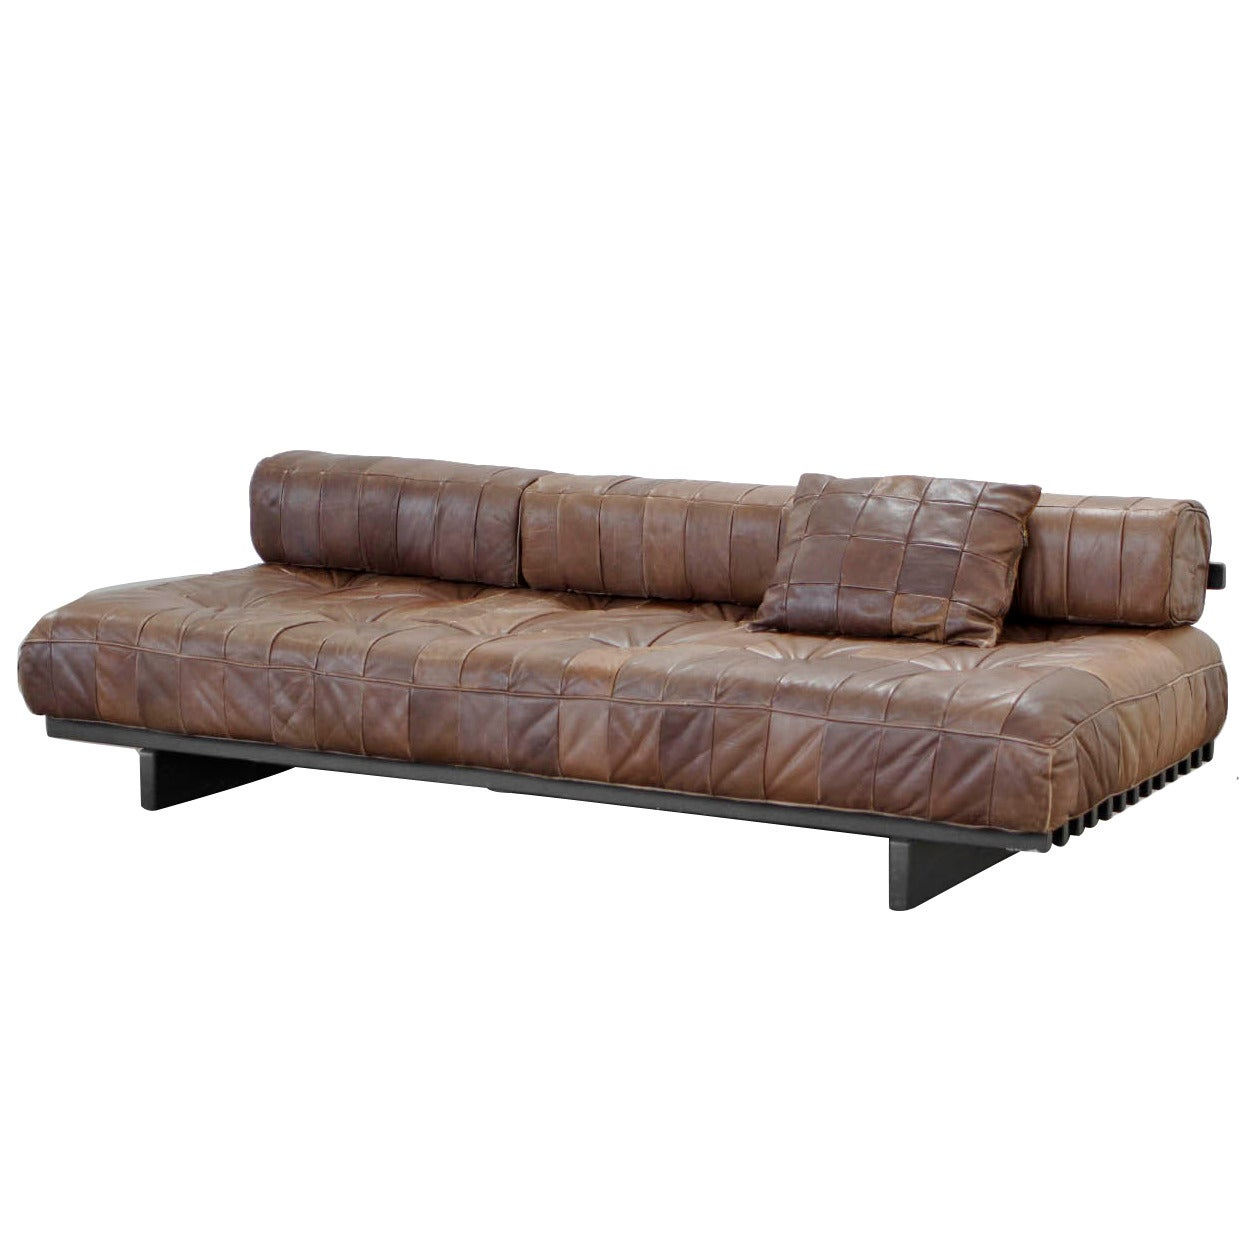 Classic Daybed Sofa By De Sede Ds 80 1972 At 1stdibs